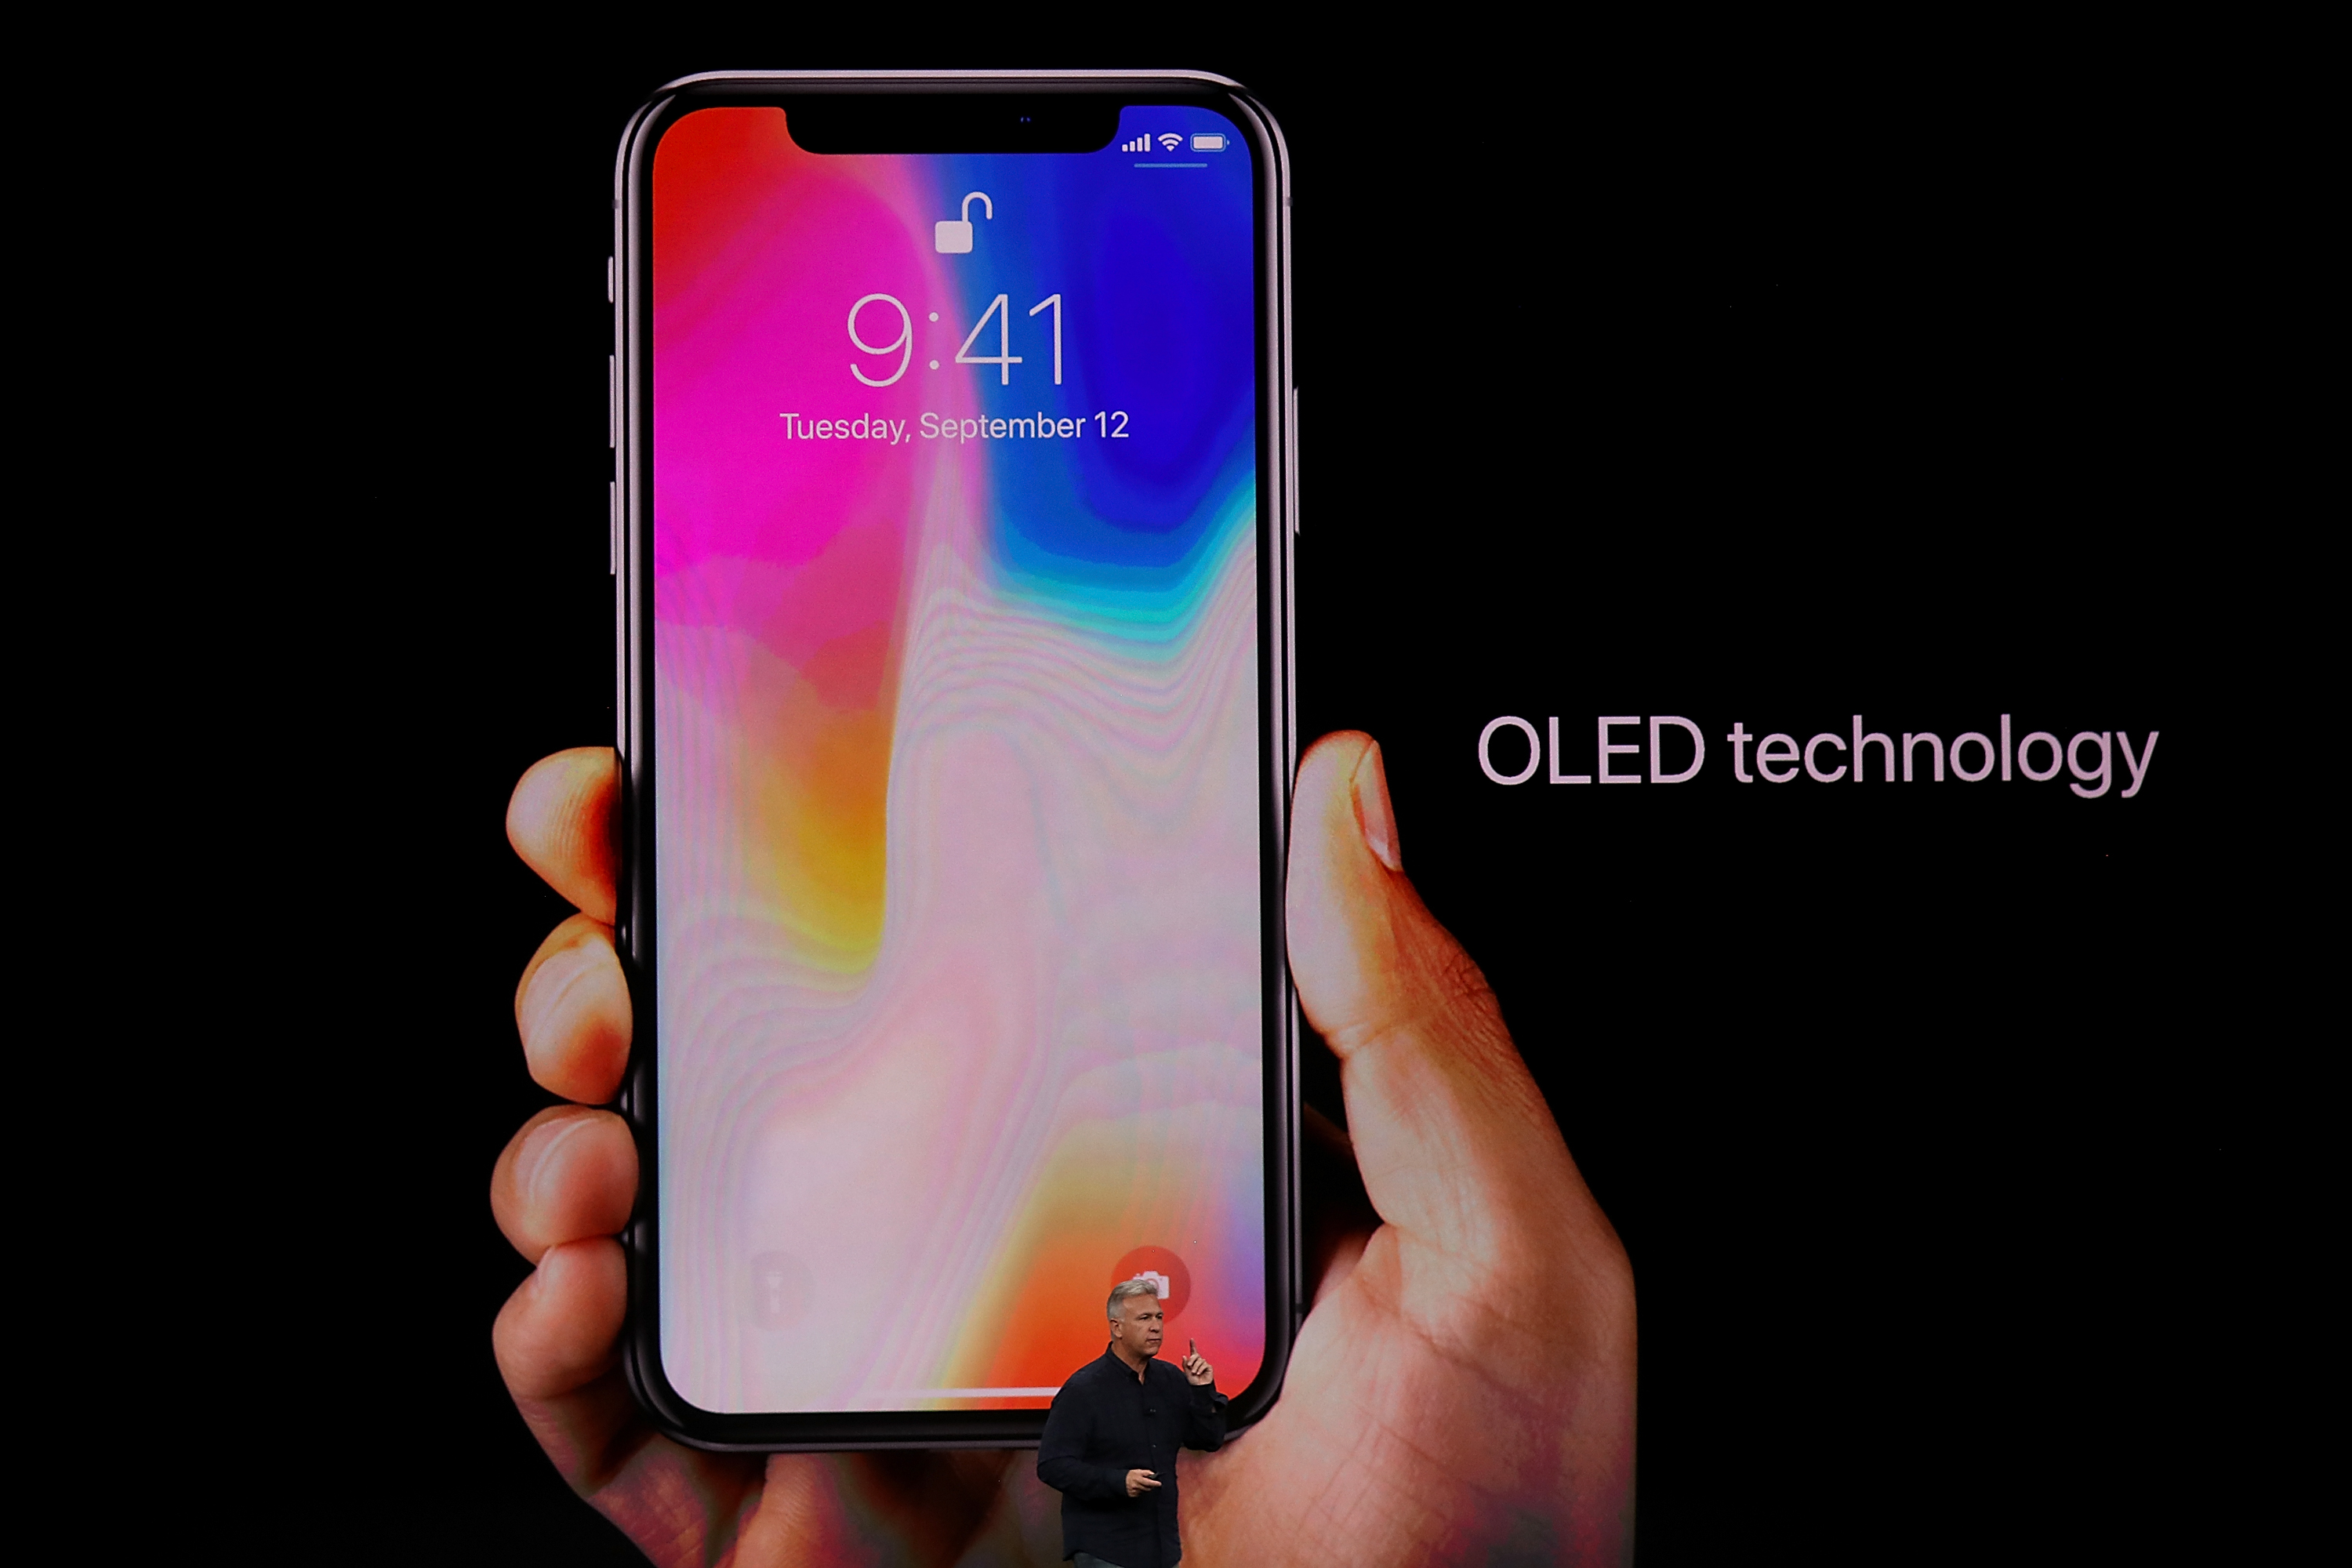 Apple Senior Vice President of Worldwide Marketing Phil Schiller introduces the new iPhone X during an Apple special event at the Steve Jobs Theatre on the Apple Park campus in Cupertino, Calif., on Sept. 12, 2017 . (Justin Sullivan/Getty Images)